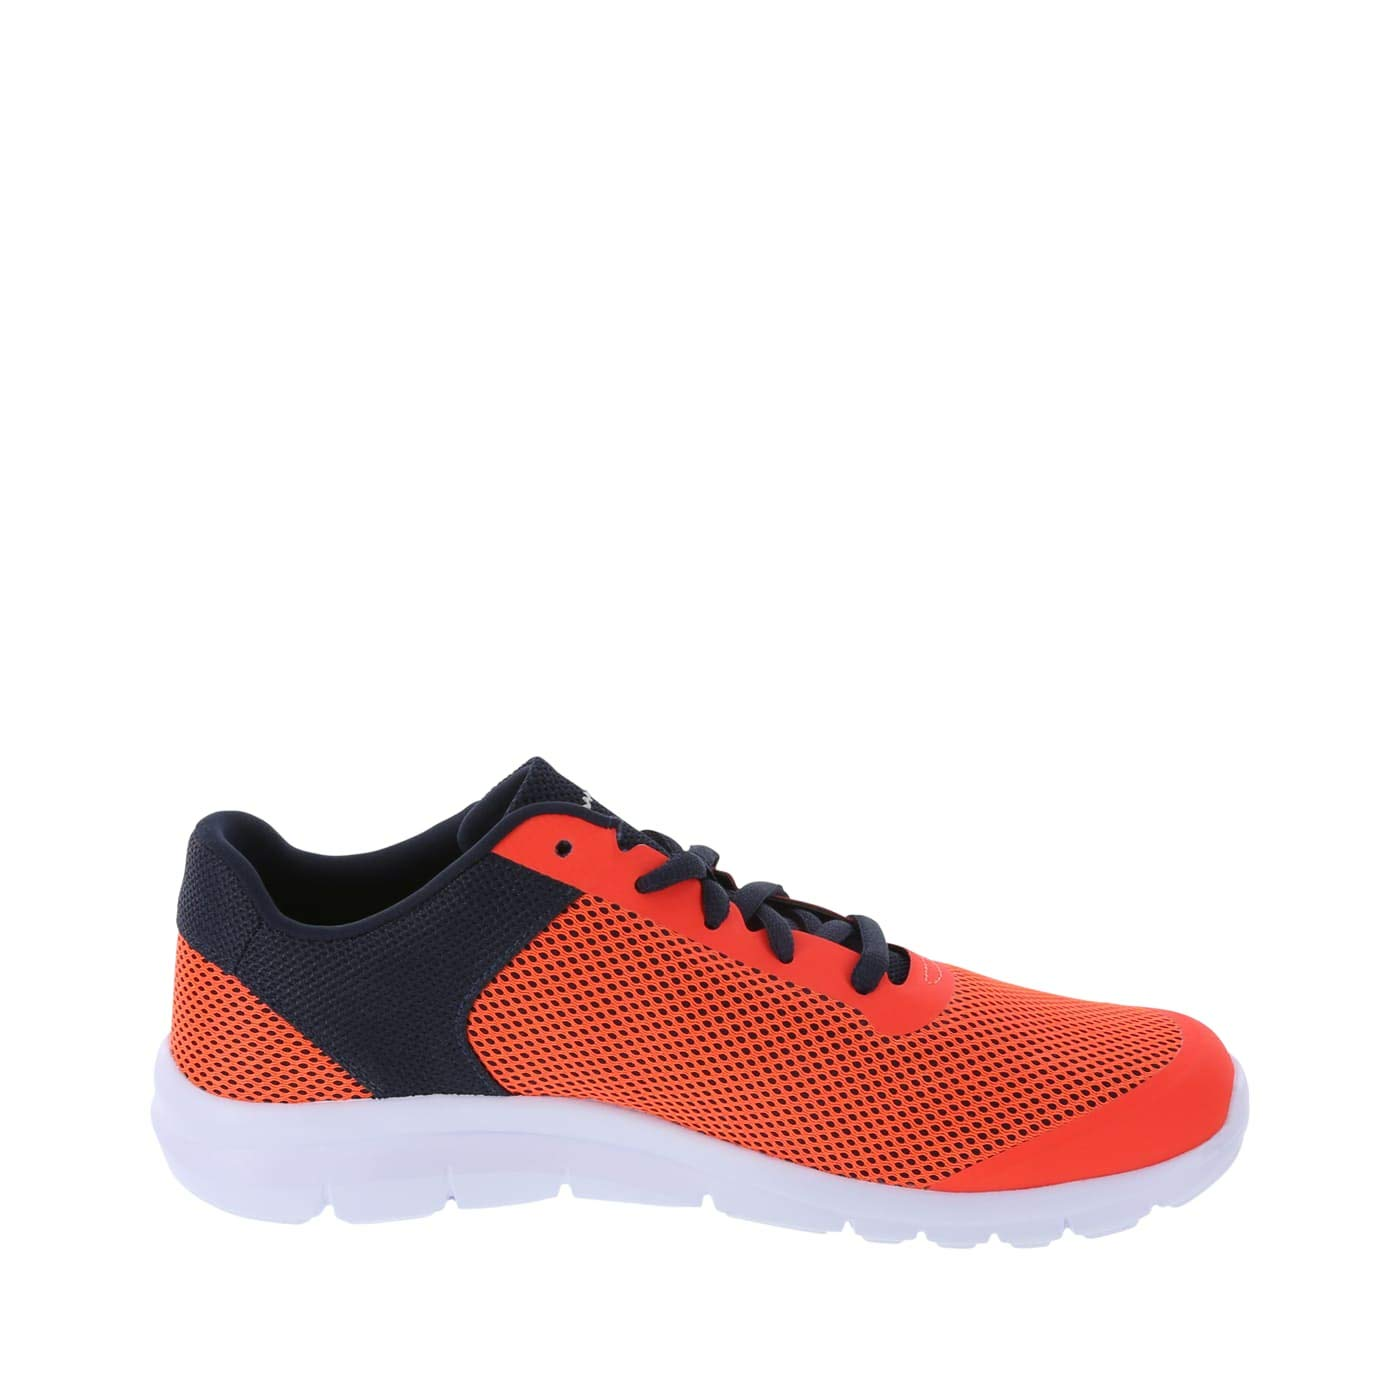 d7fb0bc18229c Champion Men s Gusto Cross Trainer Running Shoes - Ideal for Running ...